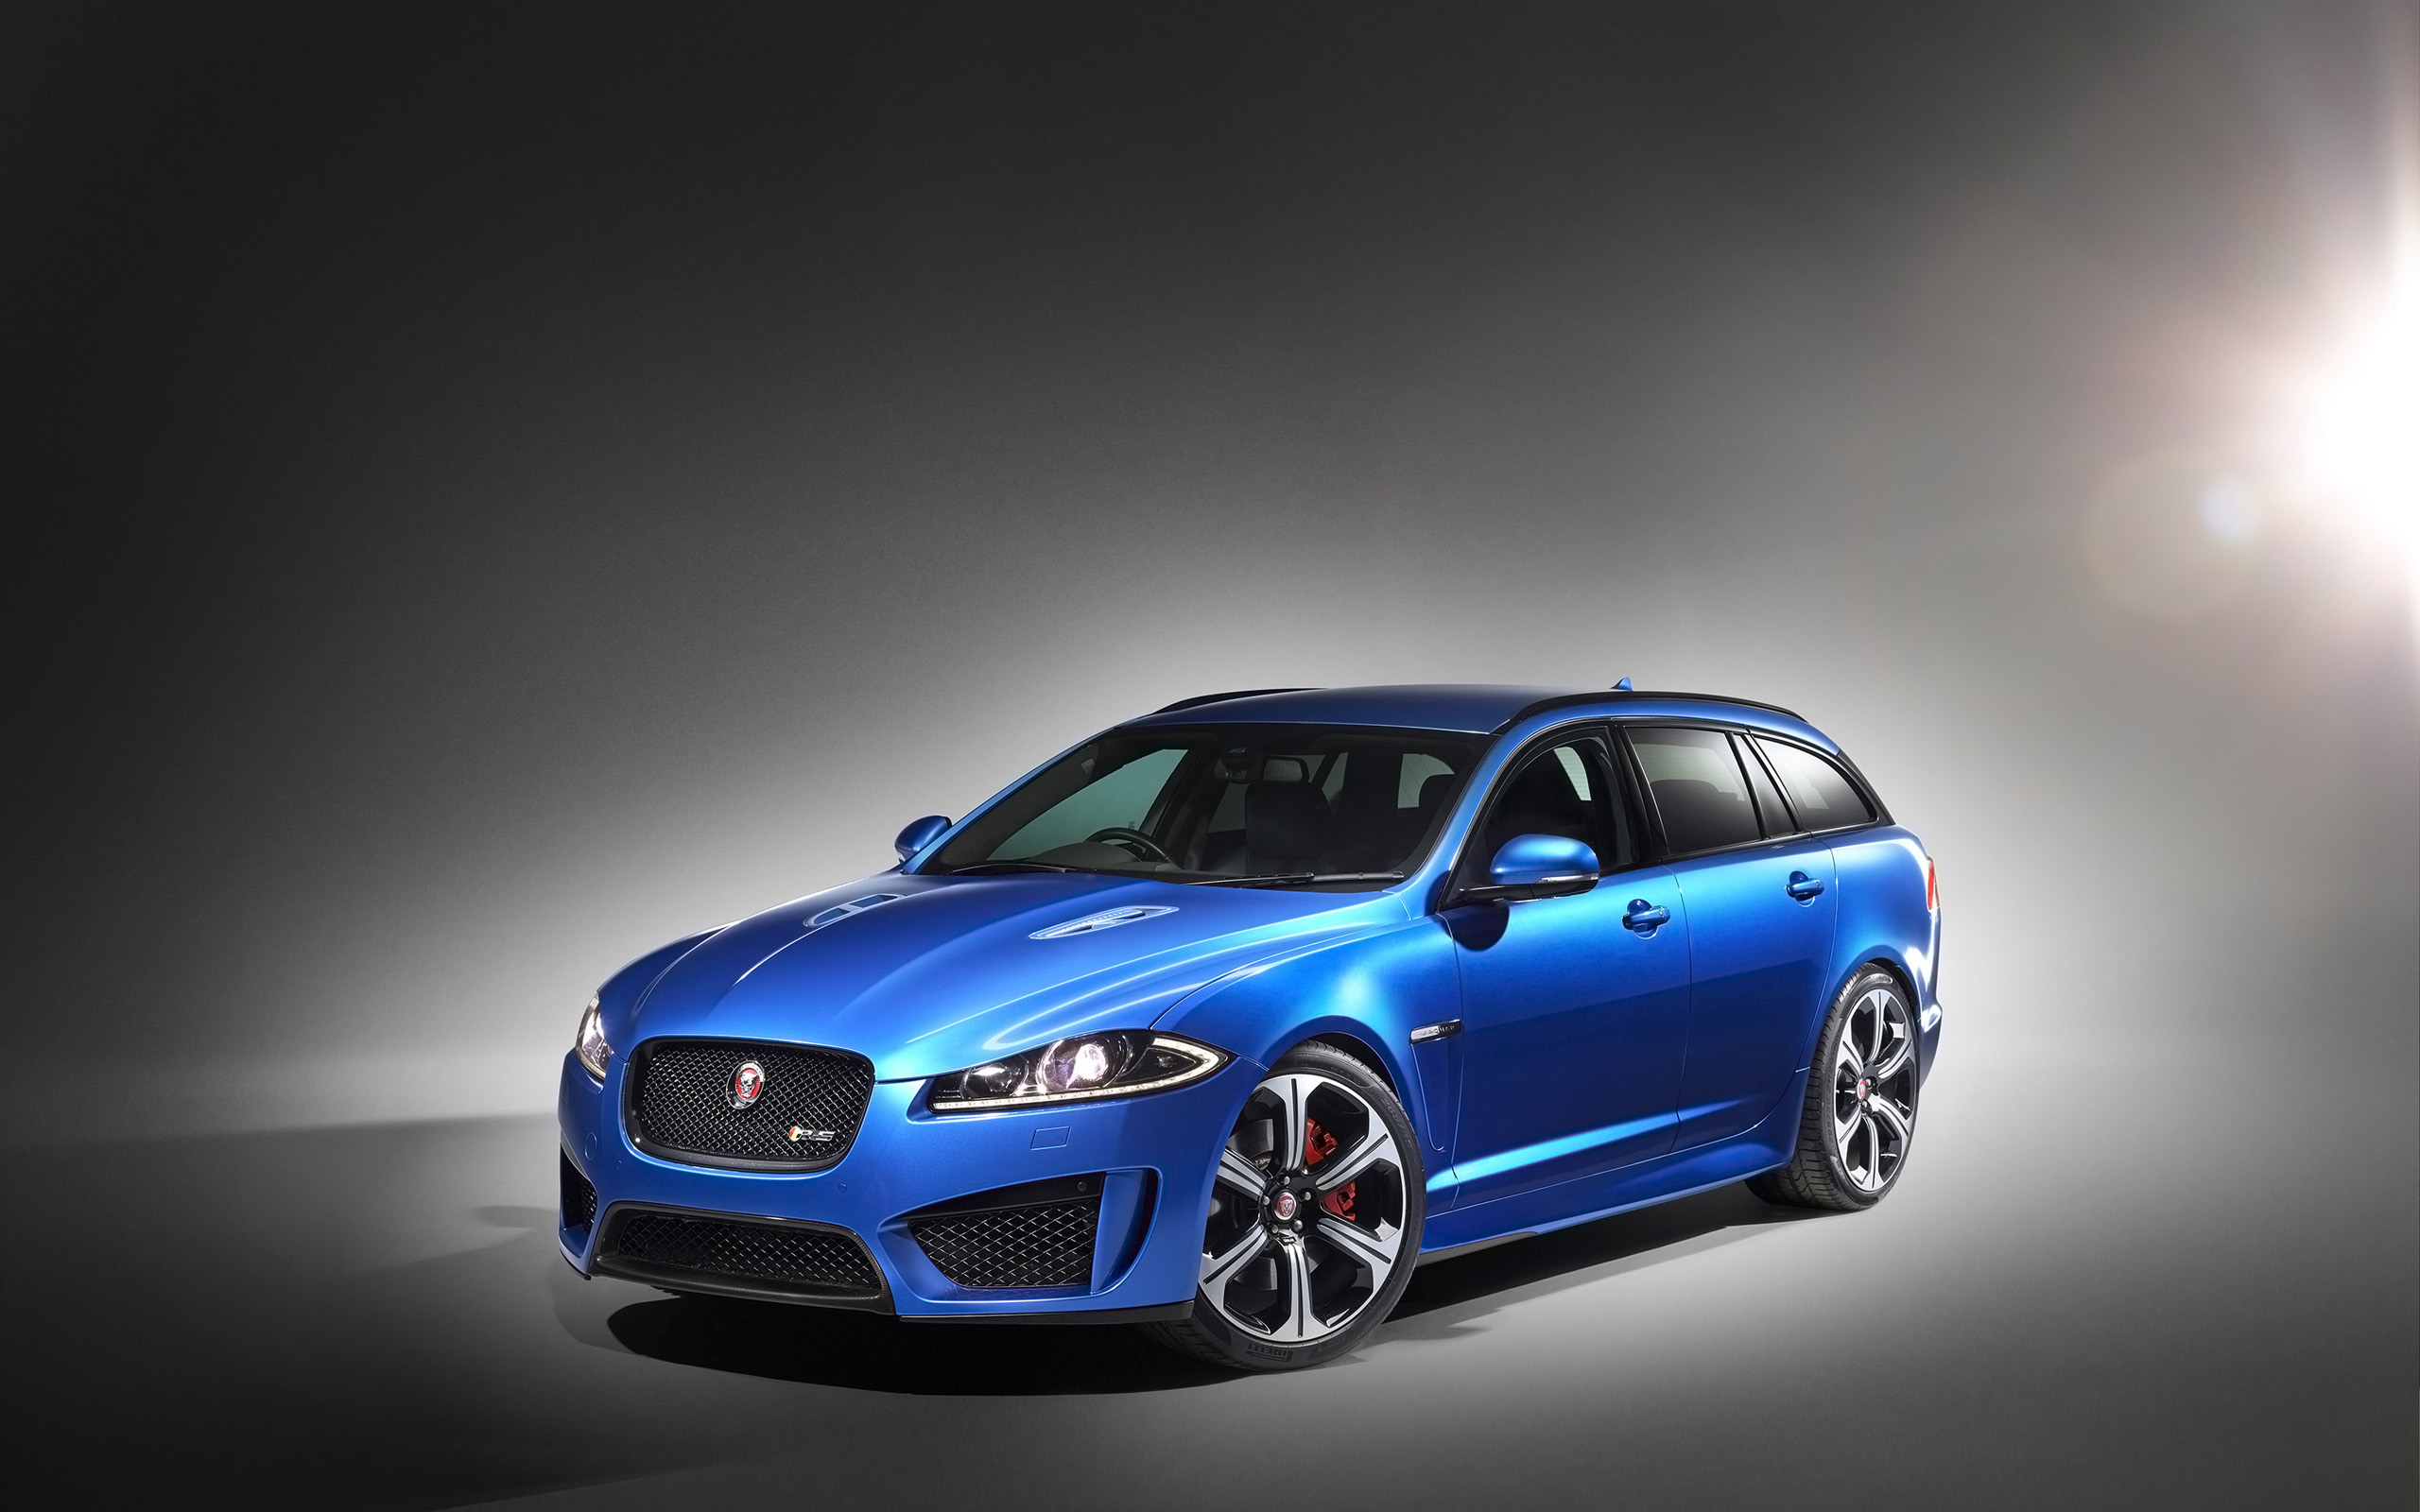 Jaguar Car Wallpaper Wallpapers High Quality: 2015 Jaguar XFR S Sportbrake Wallpaper